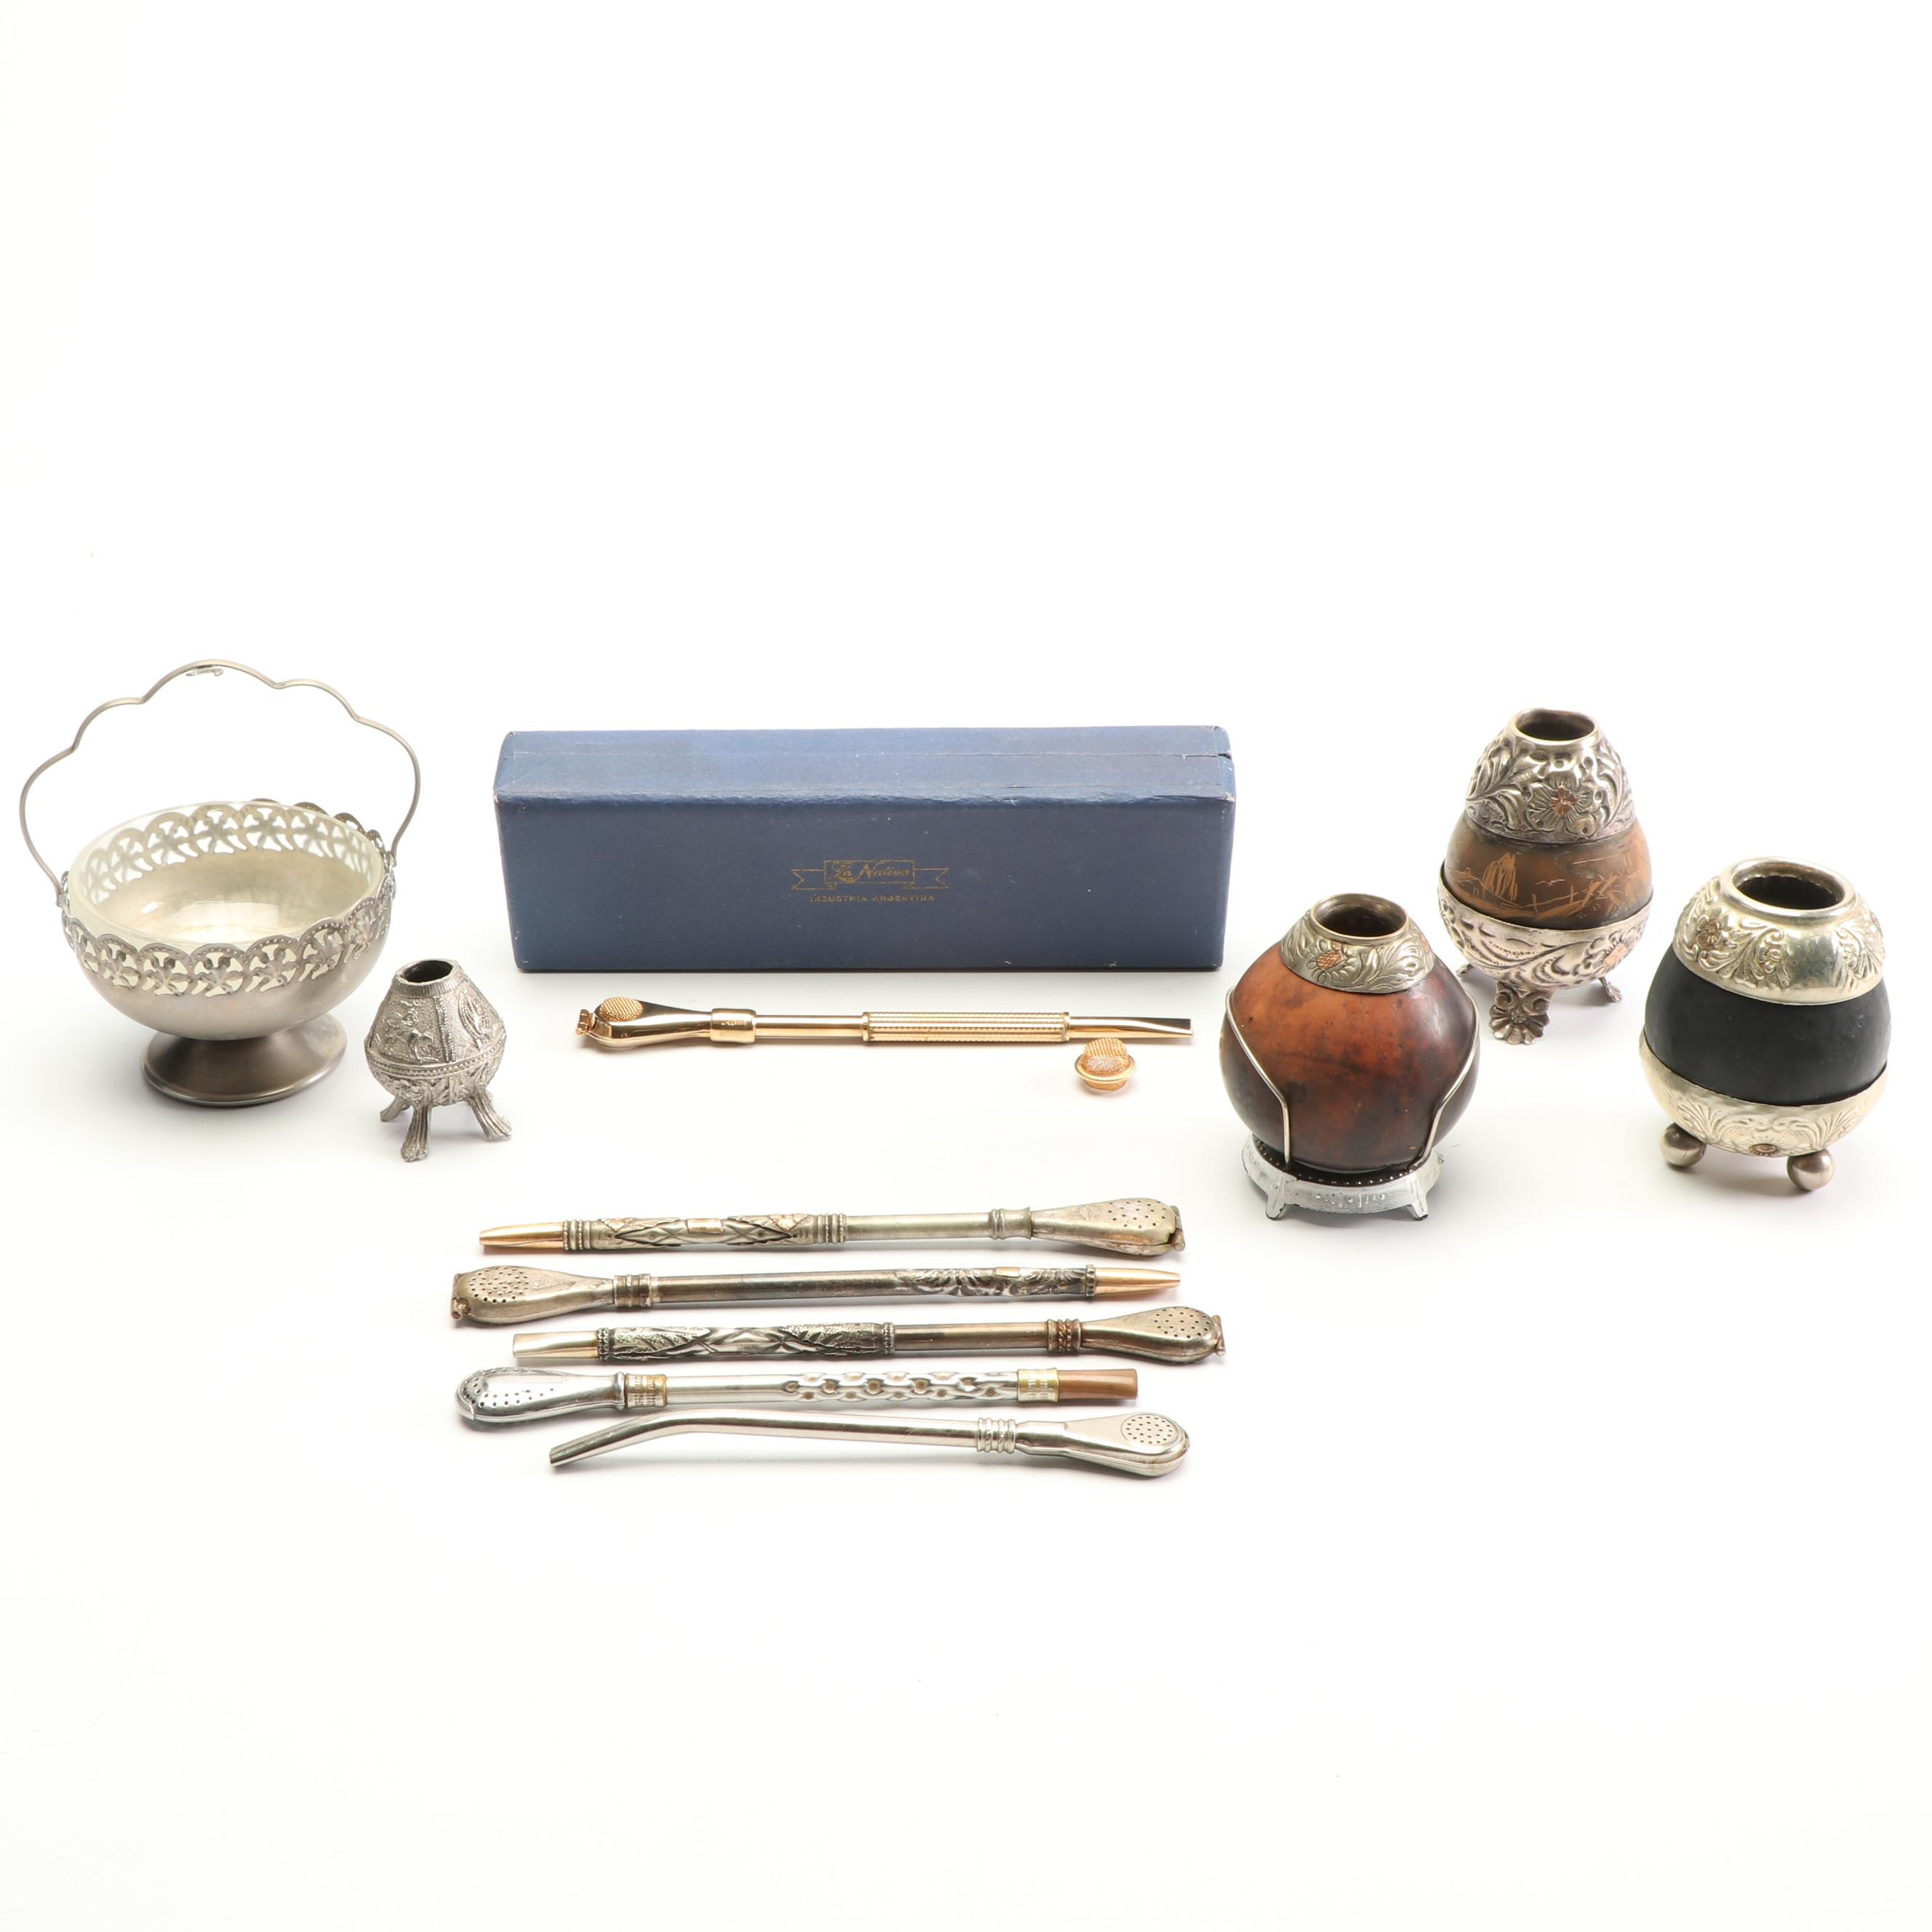 Alpacca Silver Yerba Mate Gourds and Straws with Silver Plate Sugar Basket